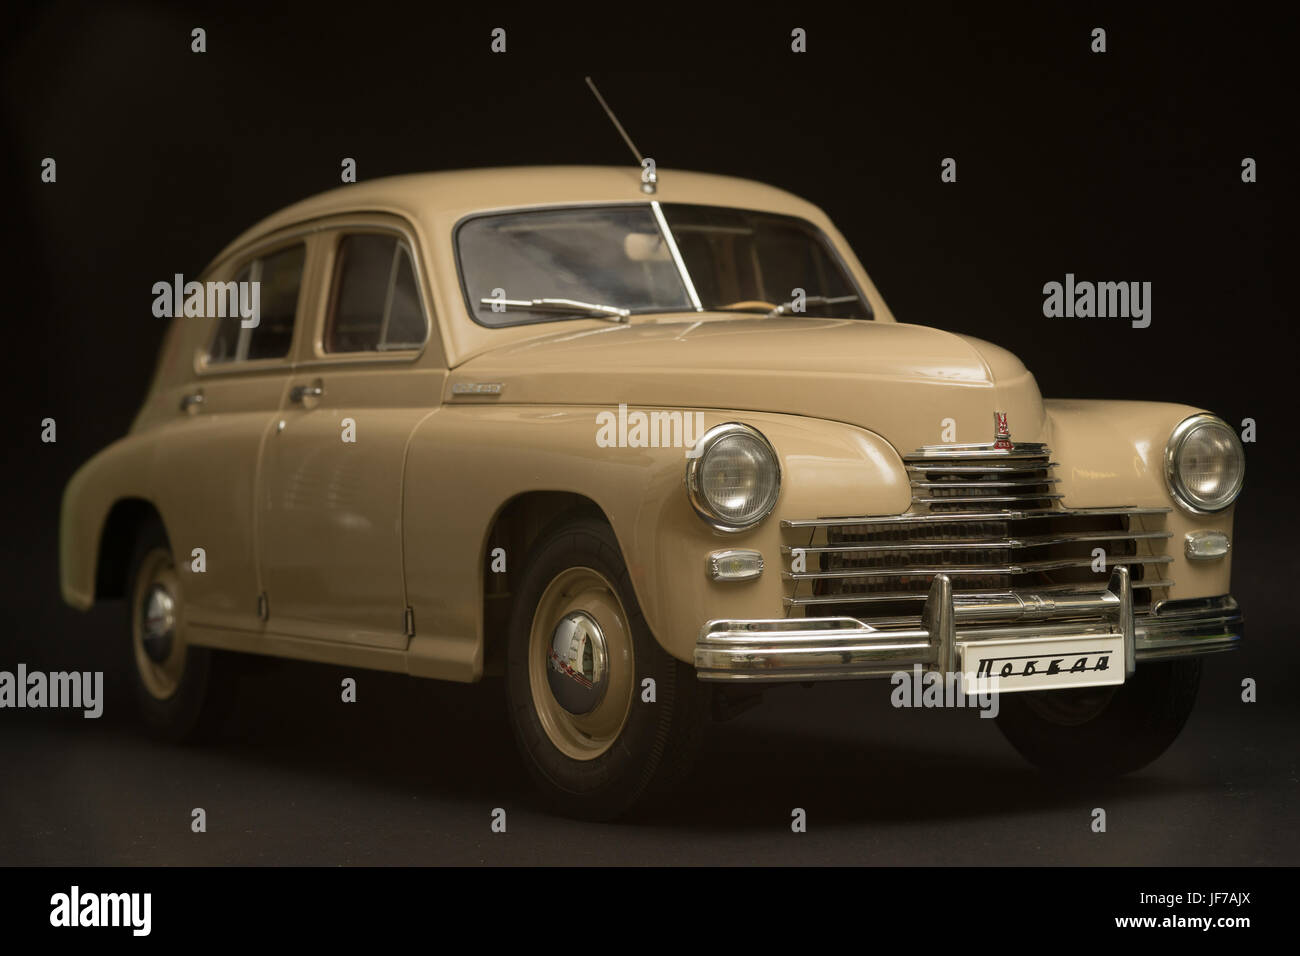 GAZ-52. The Soviet automobile industry really has something to be proud of